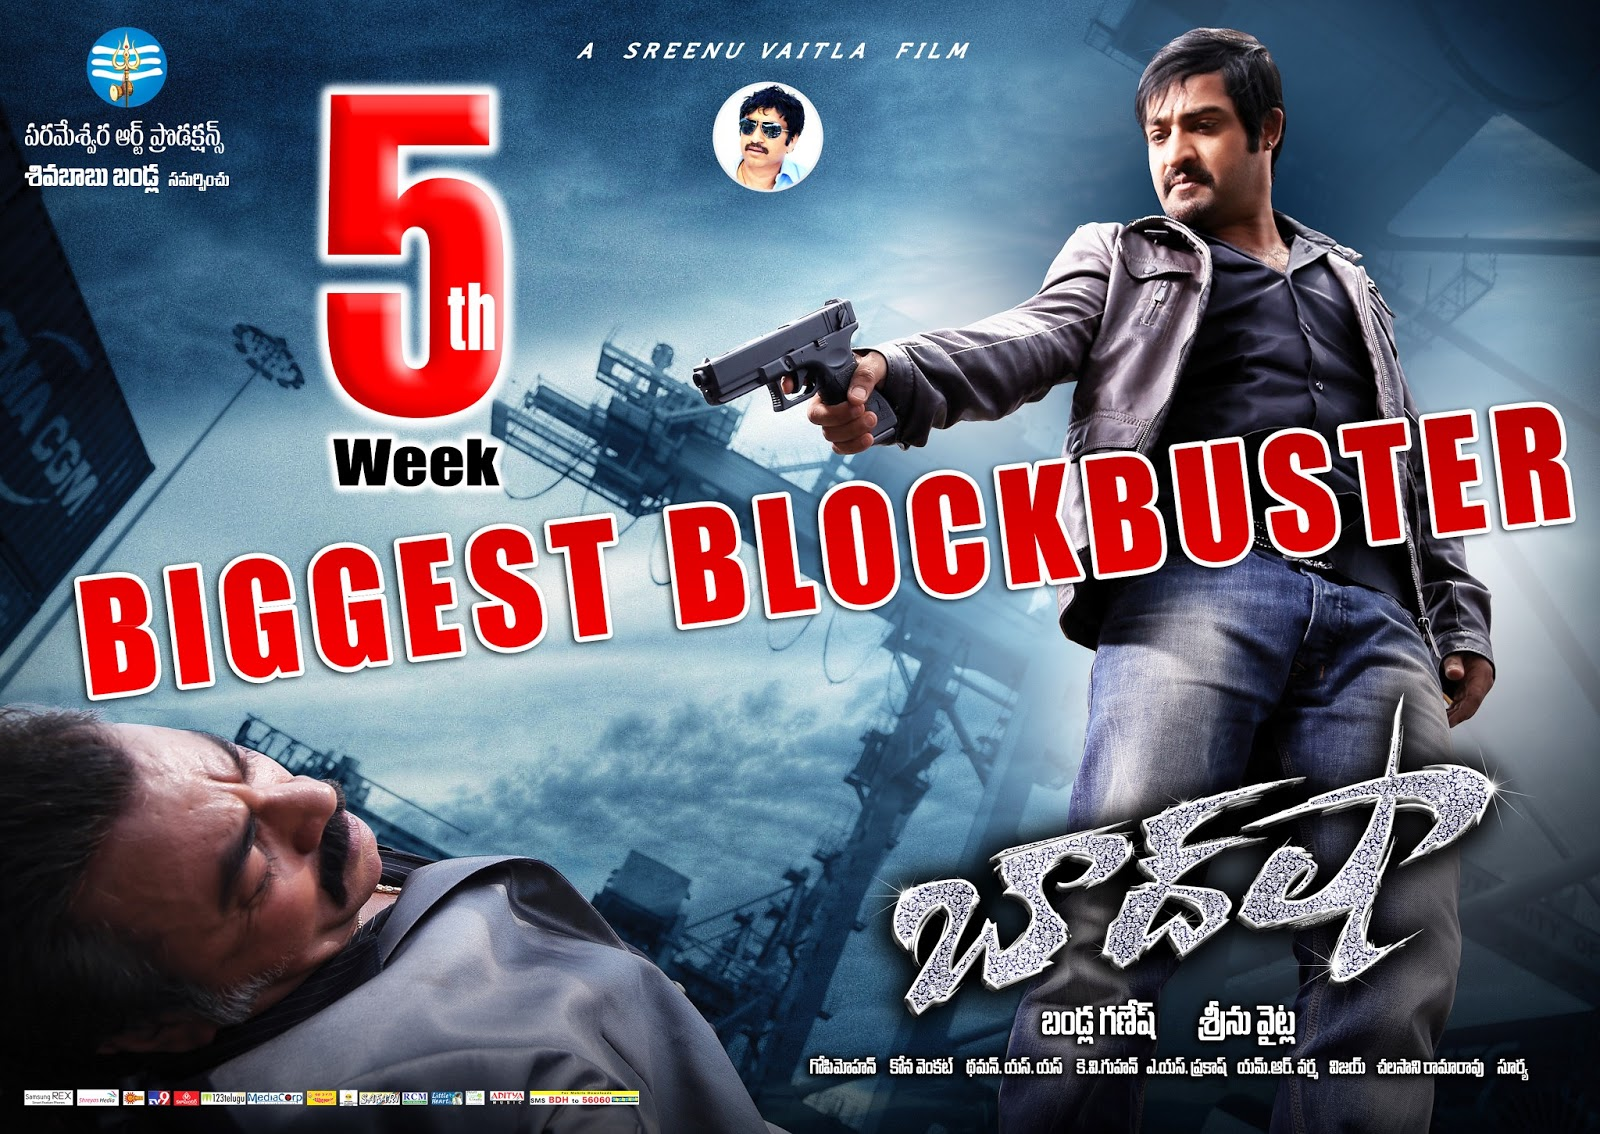 Baadshah 50 Days Posters - Cinema65.com Baadshah 2013 Posters